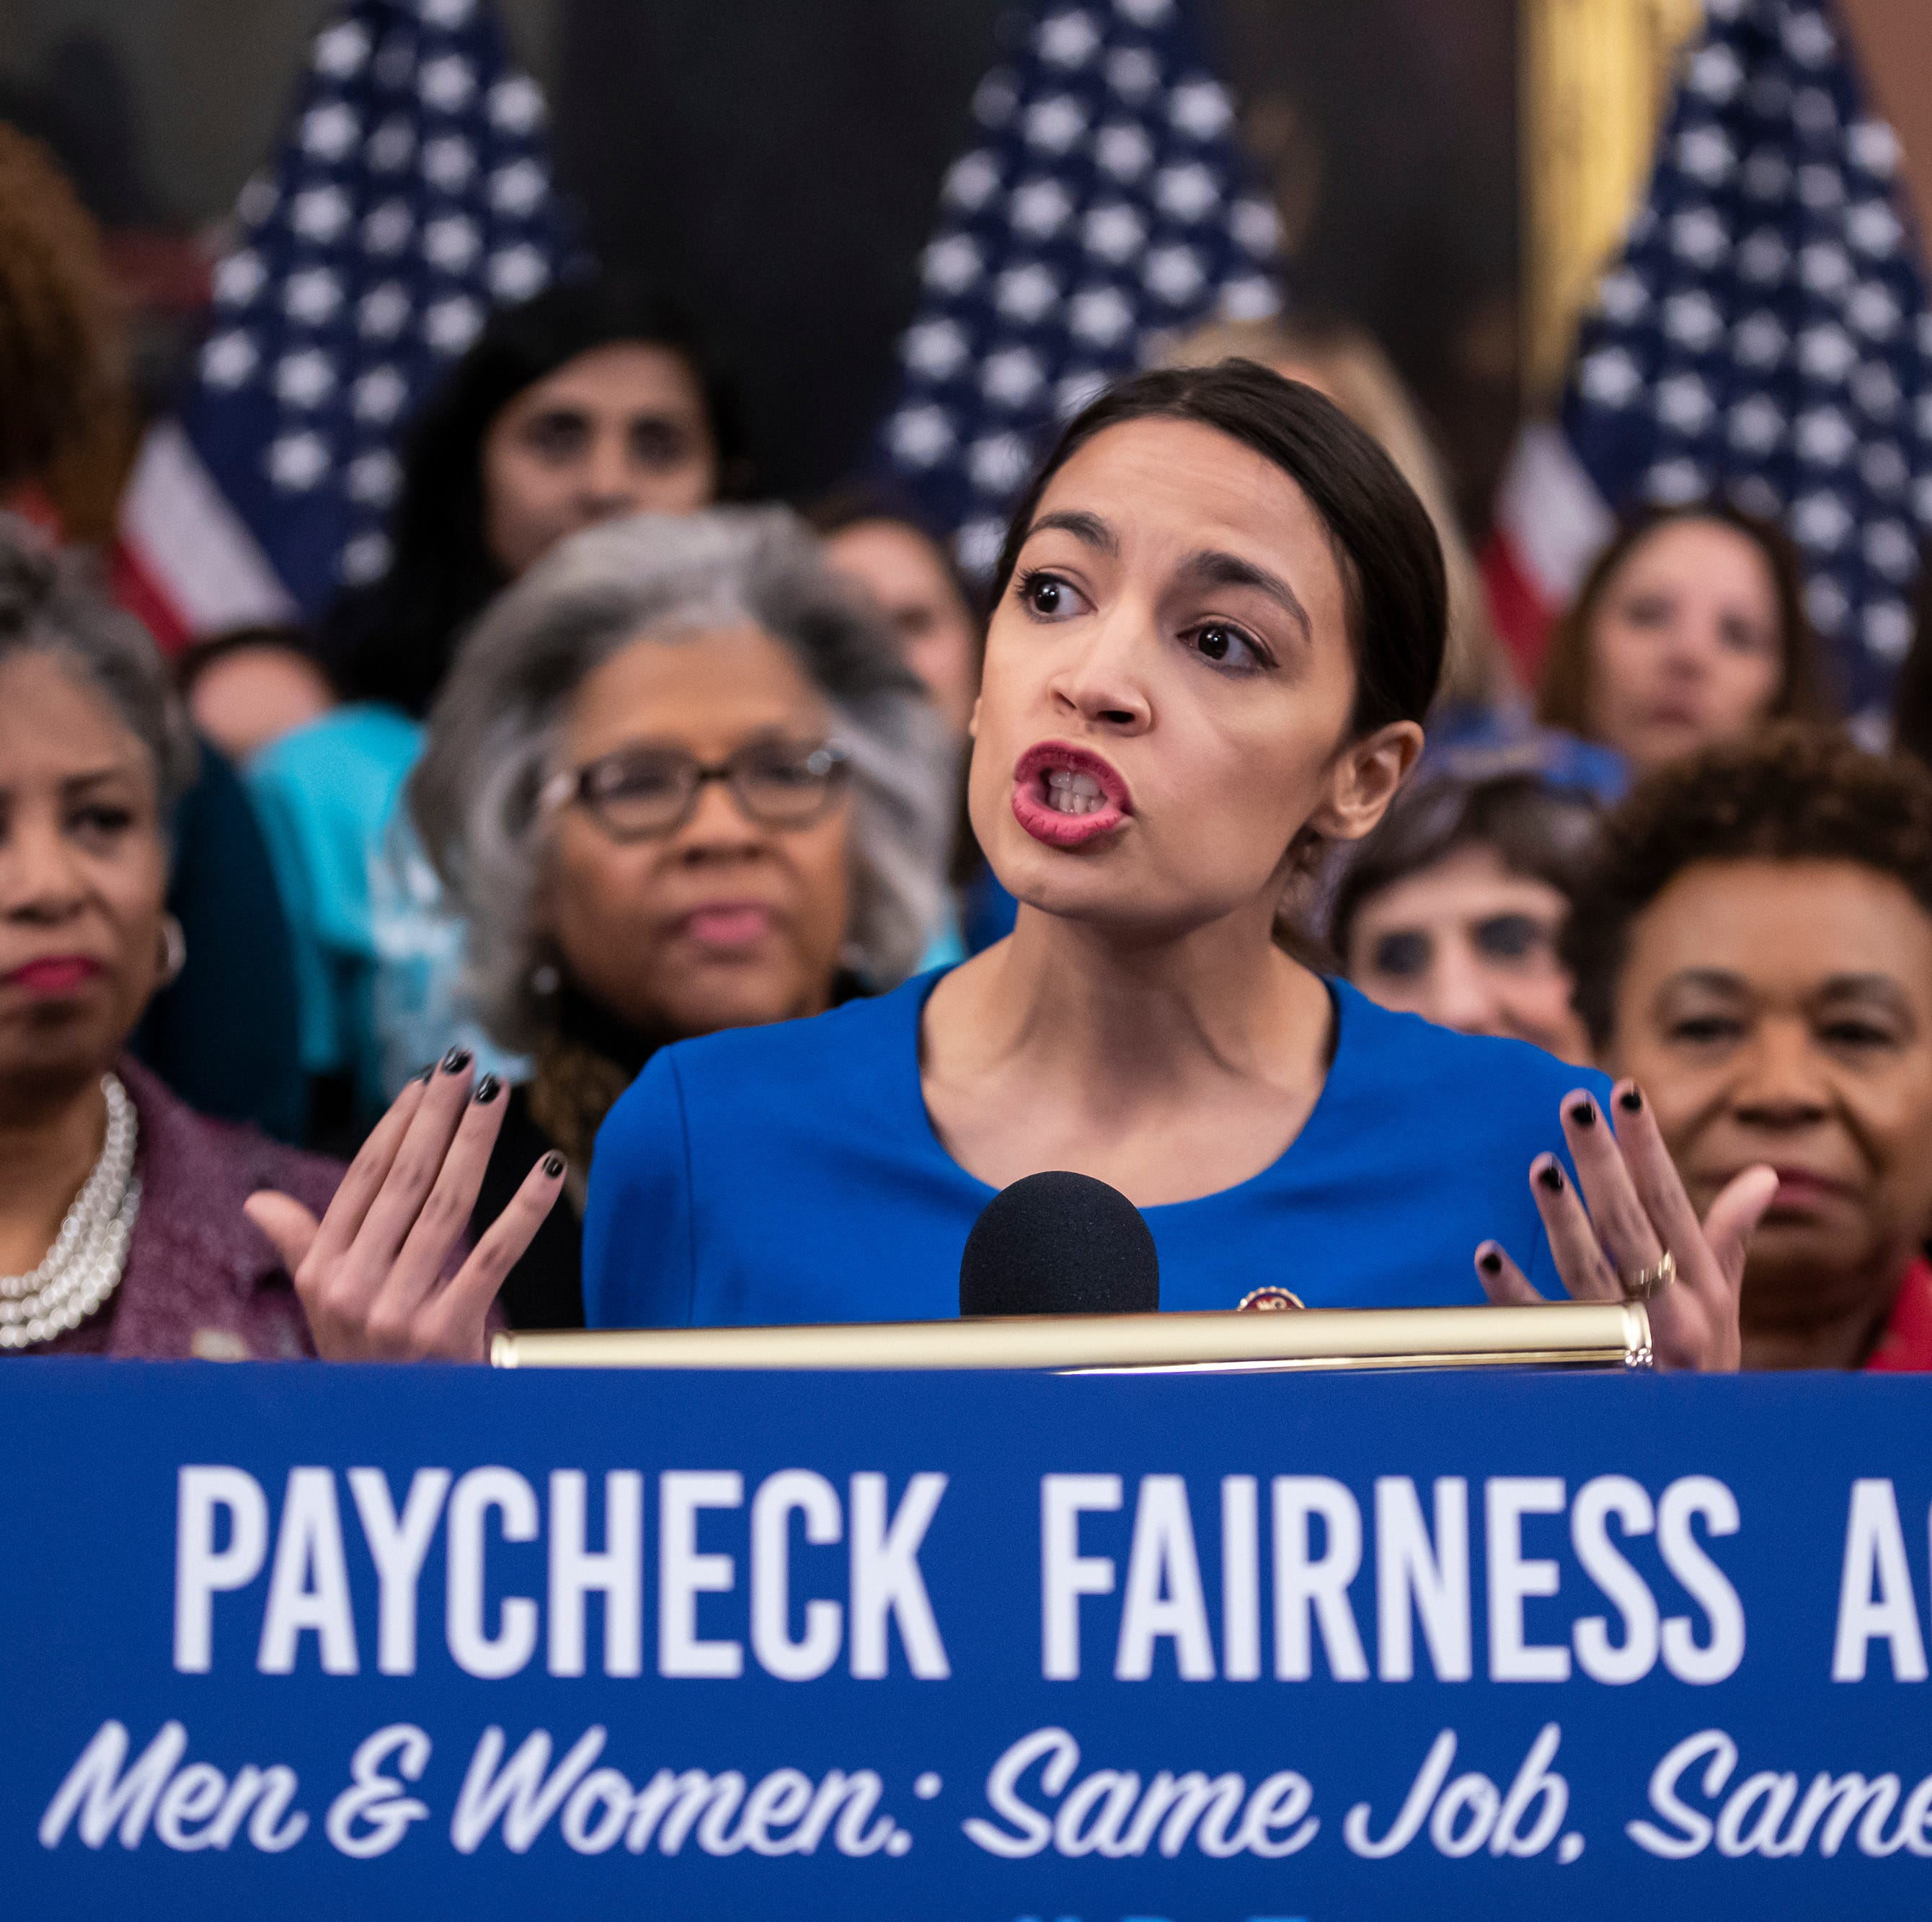 Paycheck Fairness Act treats women as victims, not equals